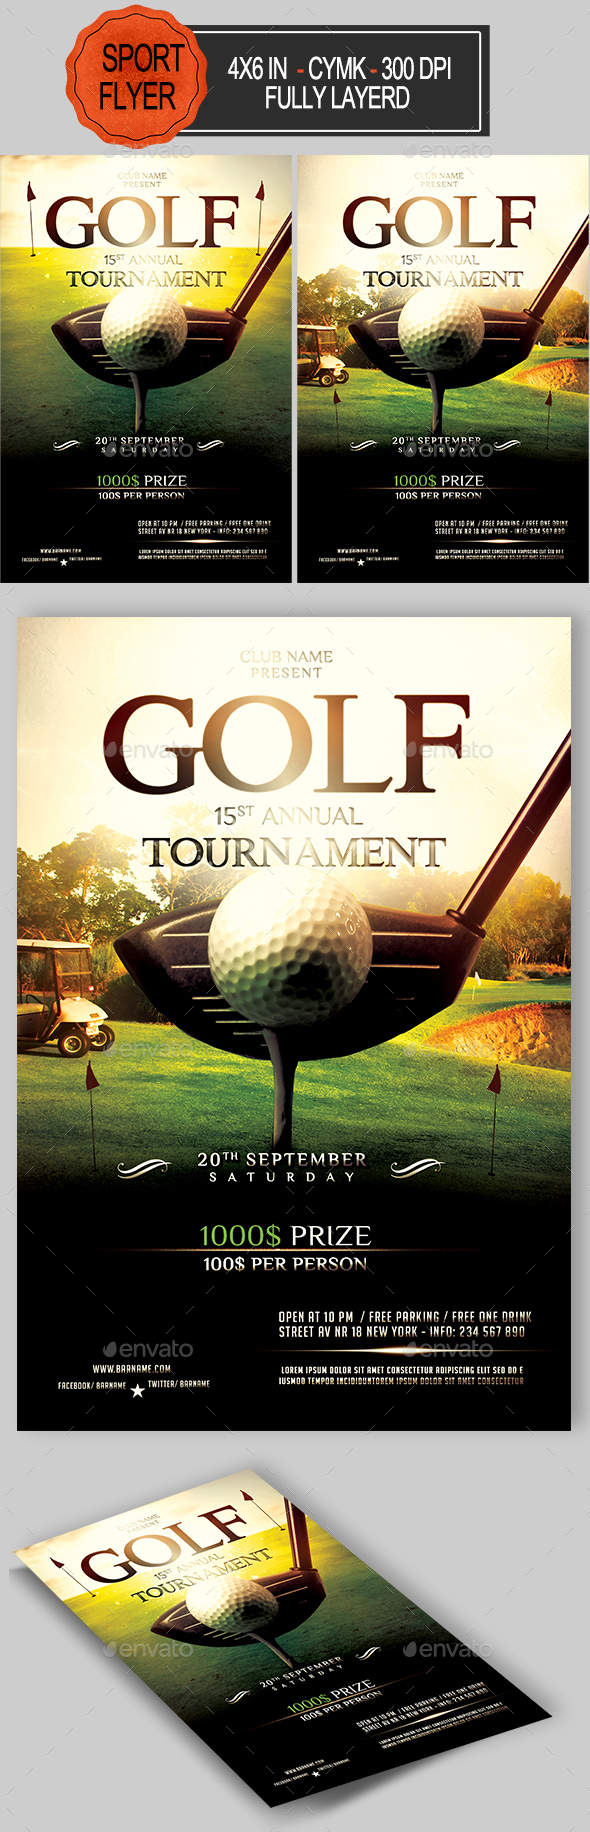 Golf Flyer Template - Sports Events